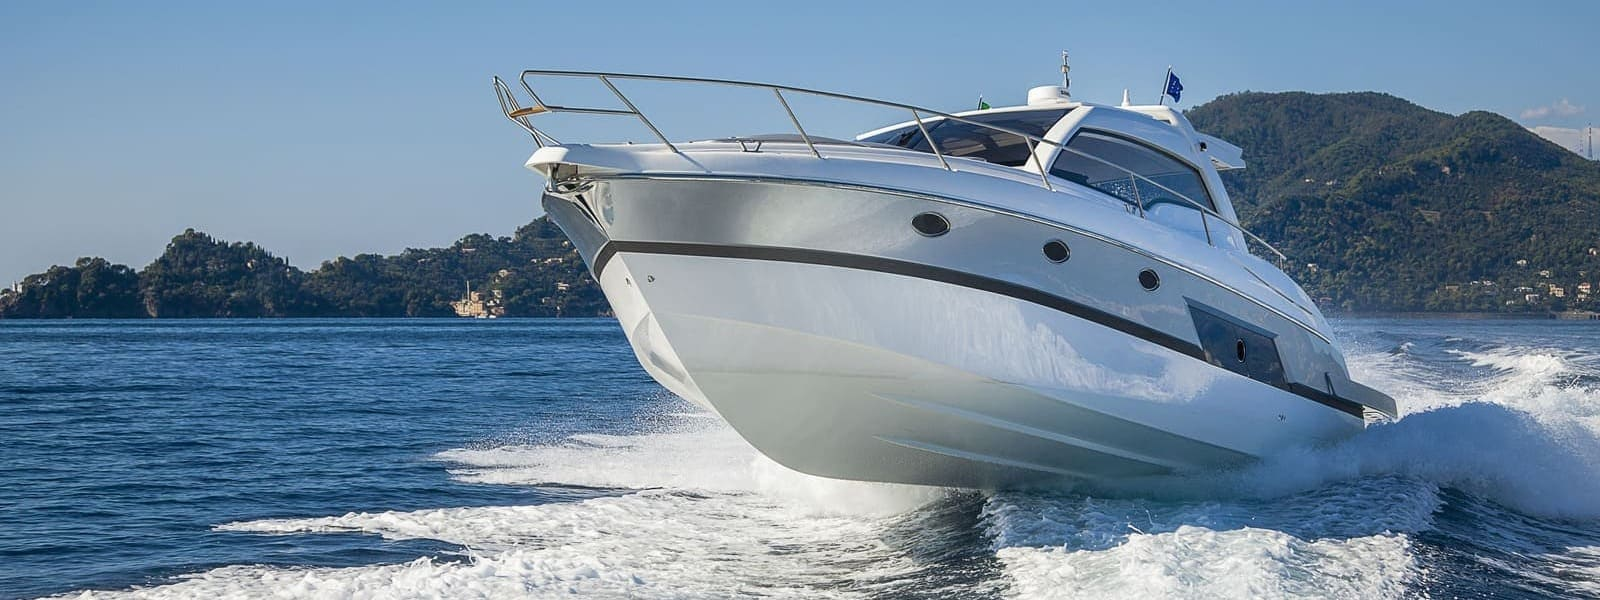 leisure boat with nano protection in water